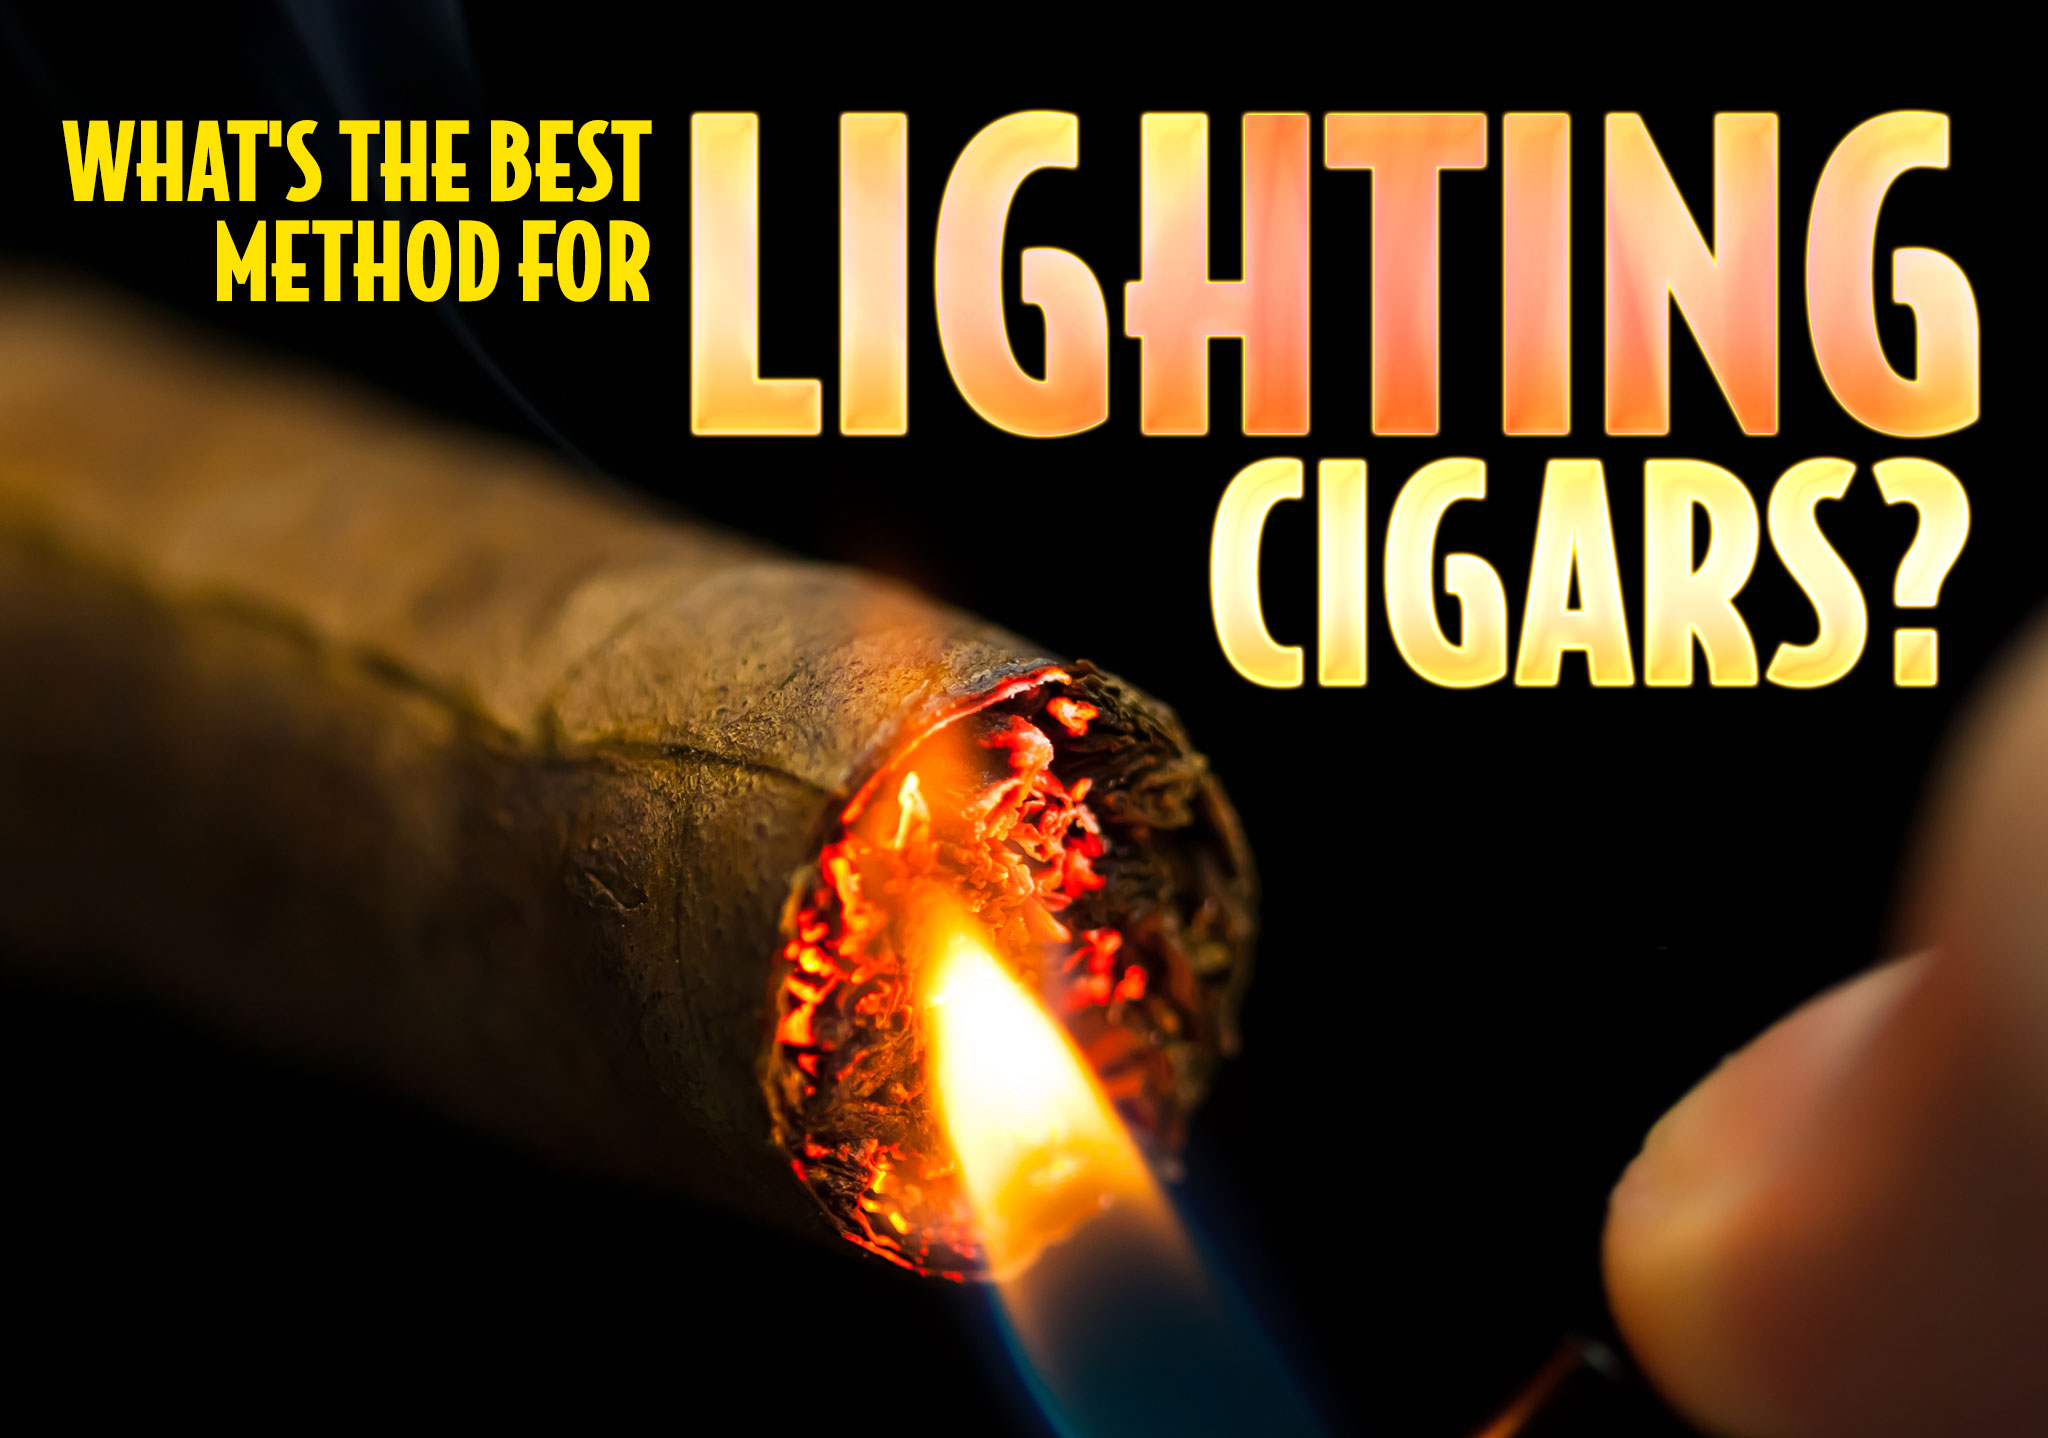 Cigar Q&A: What's the Best Method for Lighting Cigars?